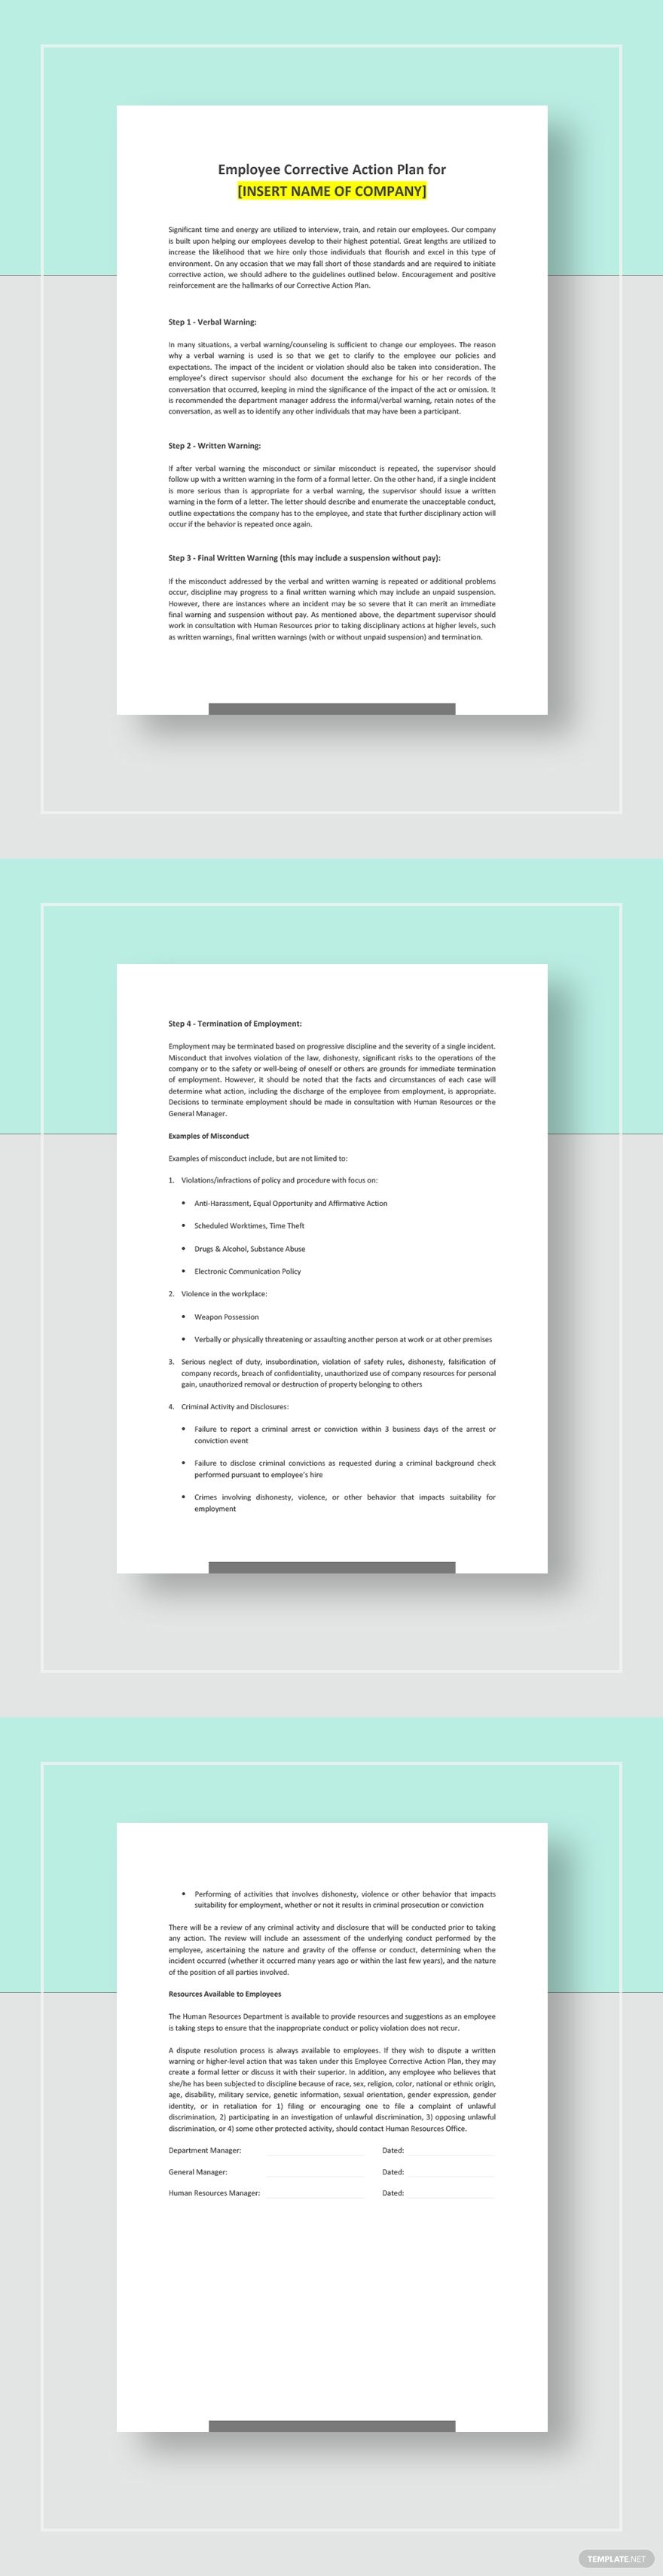 Employee Corrective Action Plan Template Free Pdf Google Docs Word Apple Pages Pdf Template Net Action Plan Template Document Templates Word Doc Corrective action plan template word